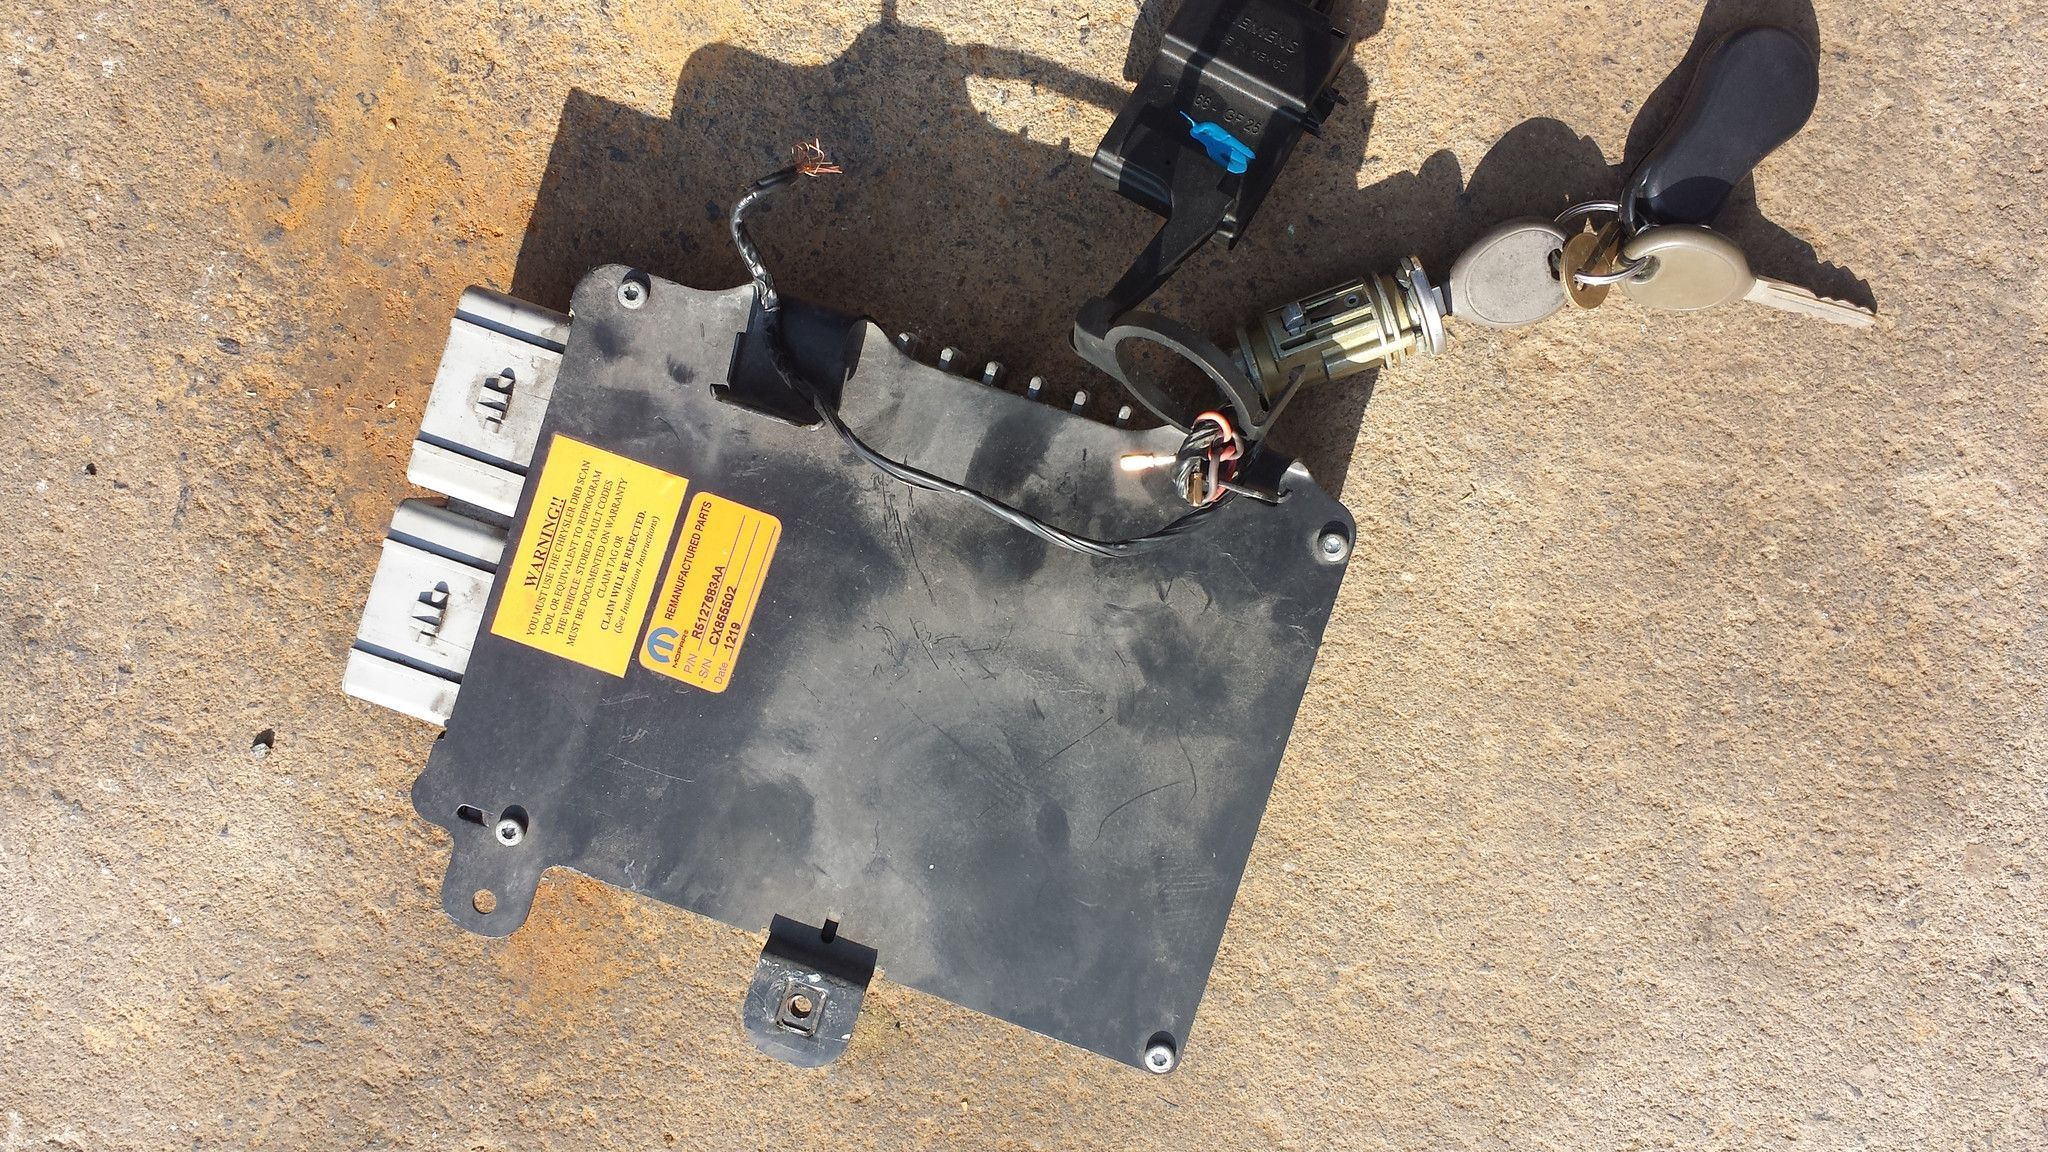 02 03 dodge caravan chrysler voyager 3 3l engine control computer p05127683aa 05127683aa 683aa immobilizer